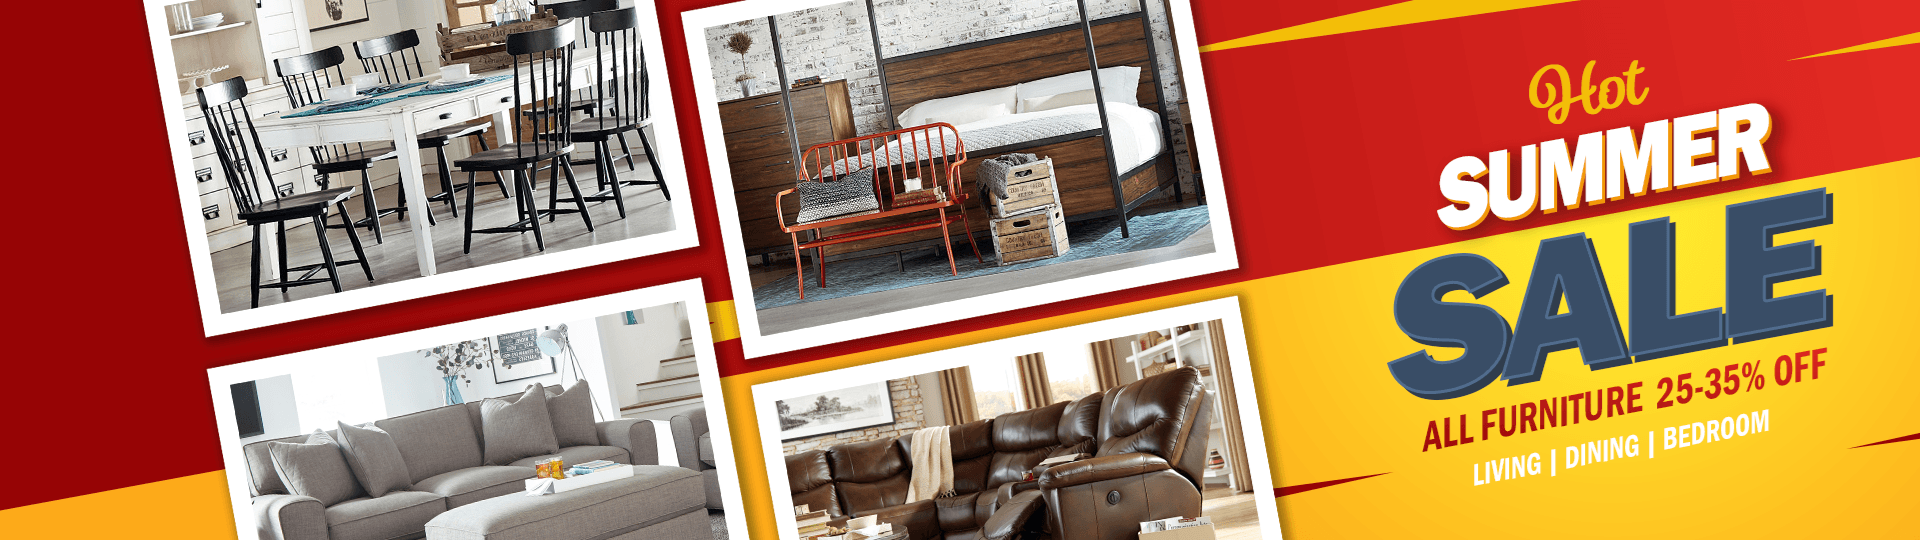 Hot Summer Sale! Up to 35% OFF All Furniture Brands